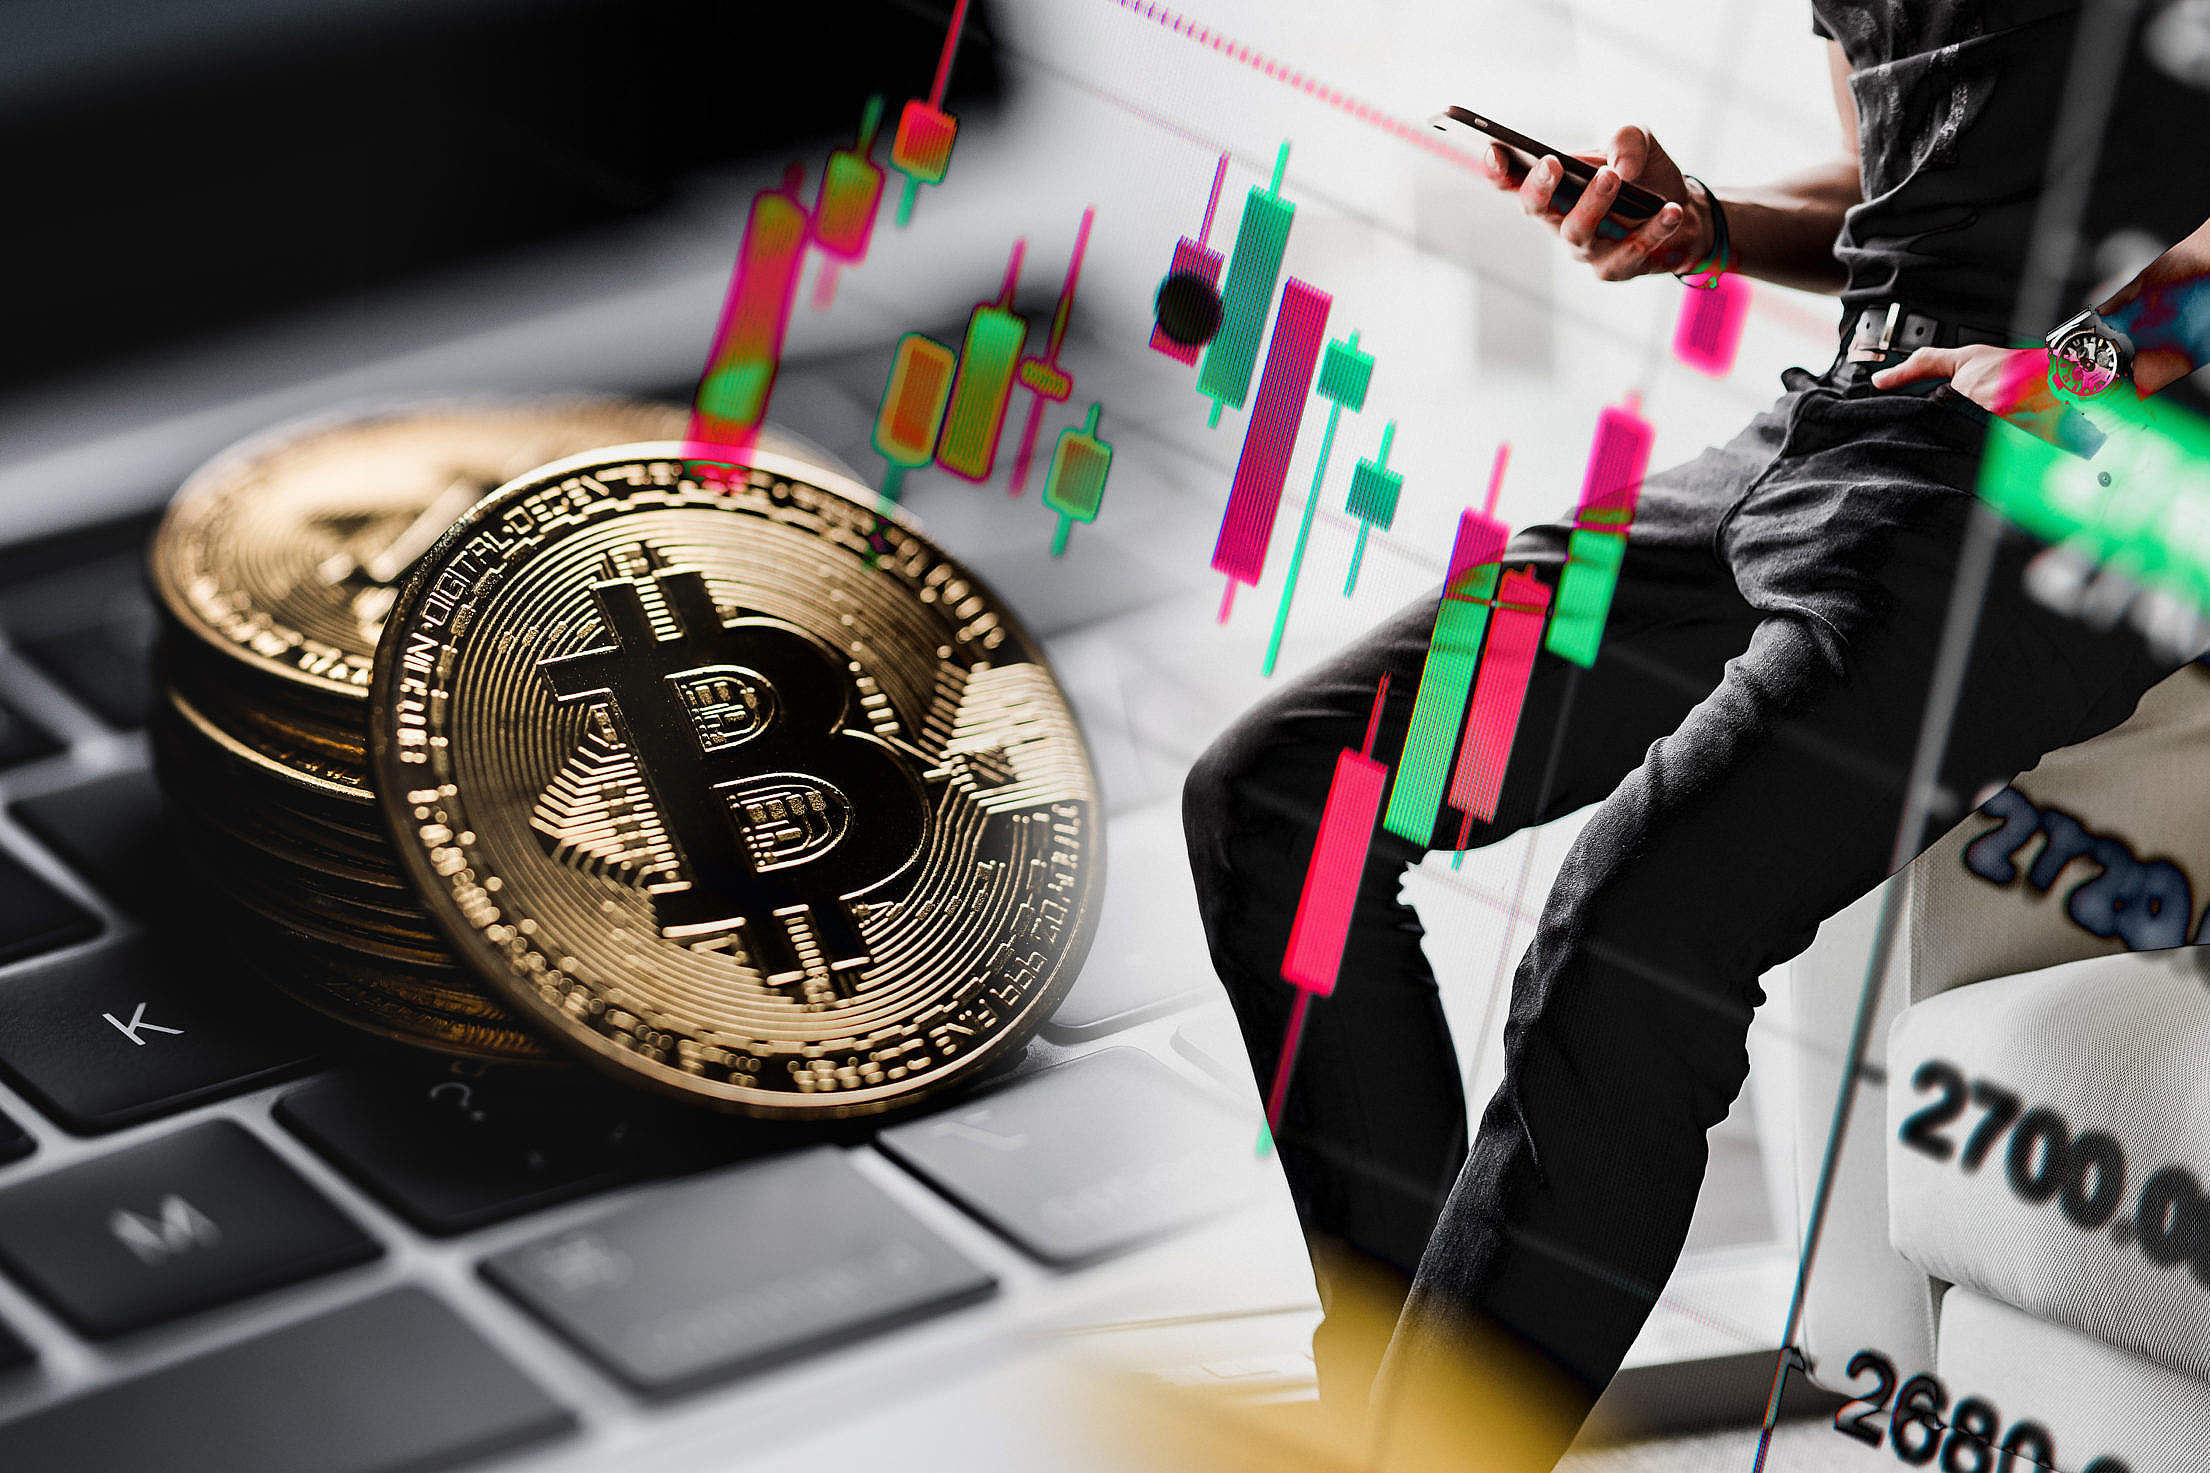 Bitcoin Mania Free Stock Photo